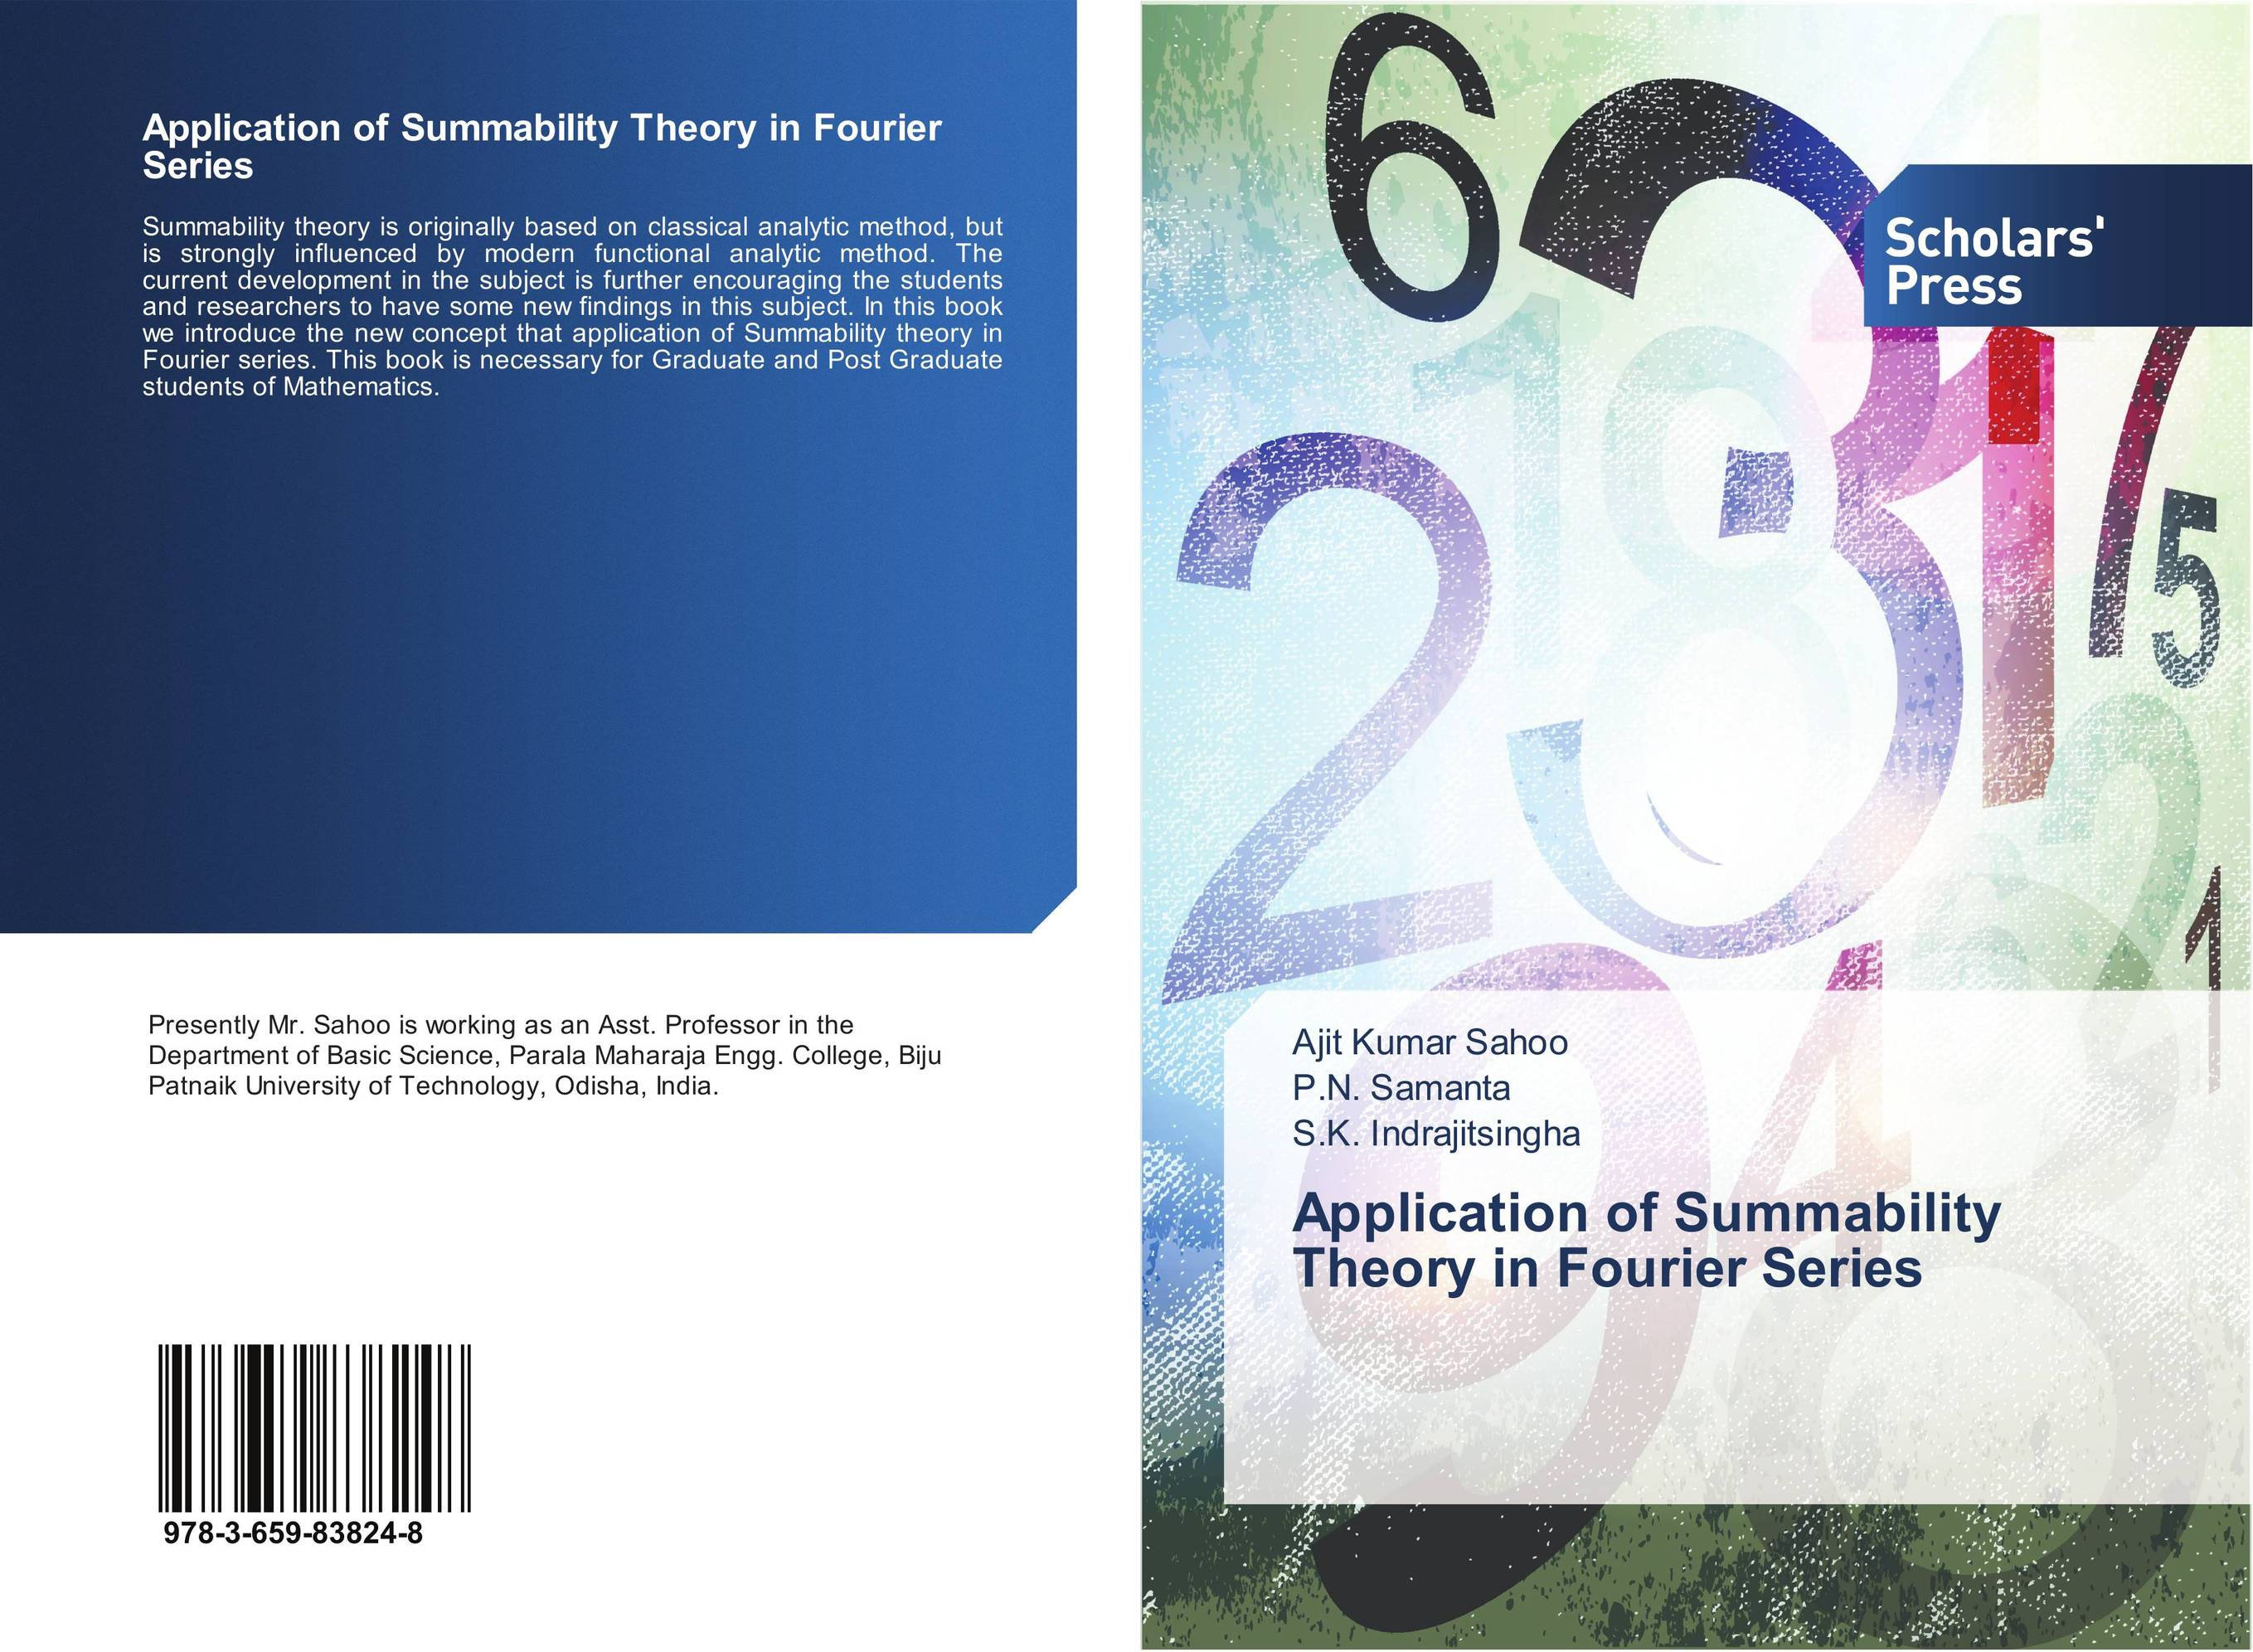 Application of Summability Theory in Fourier Series new binomial and new view on light theory